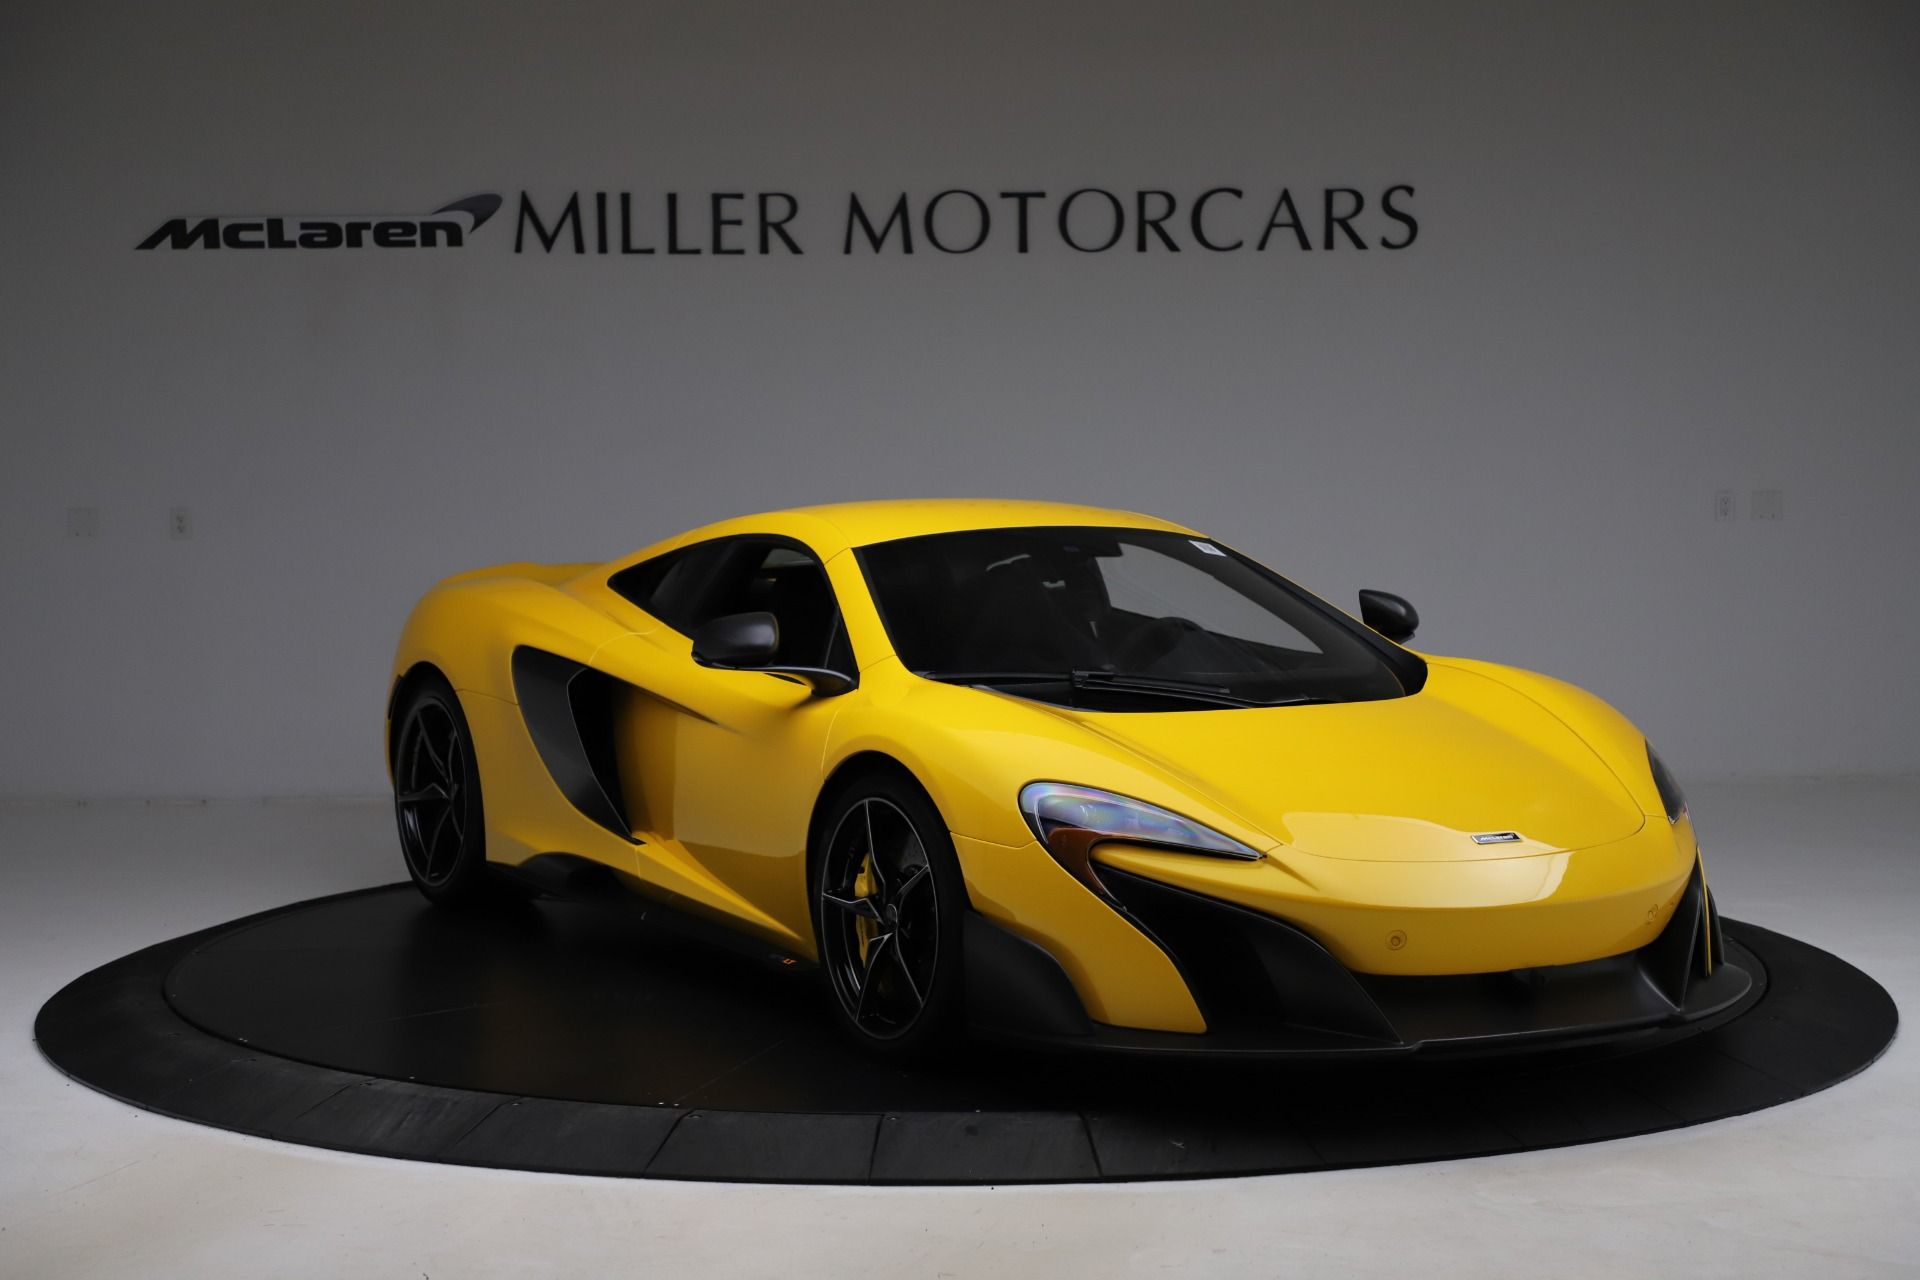 Used 2016 McLaren 675LT Coupe For Sale In Greenwich, CT 1916_p10